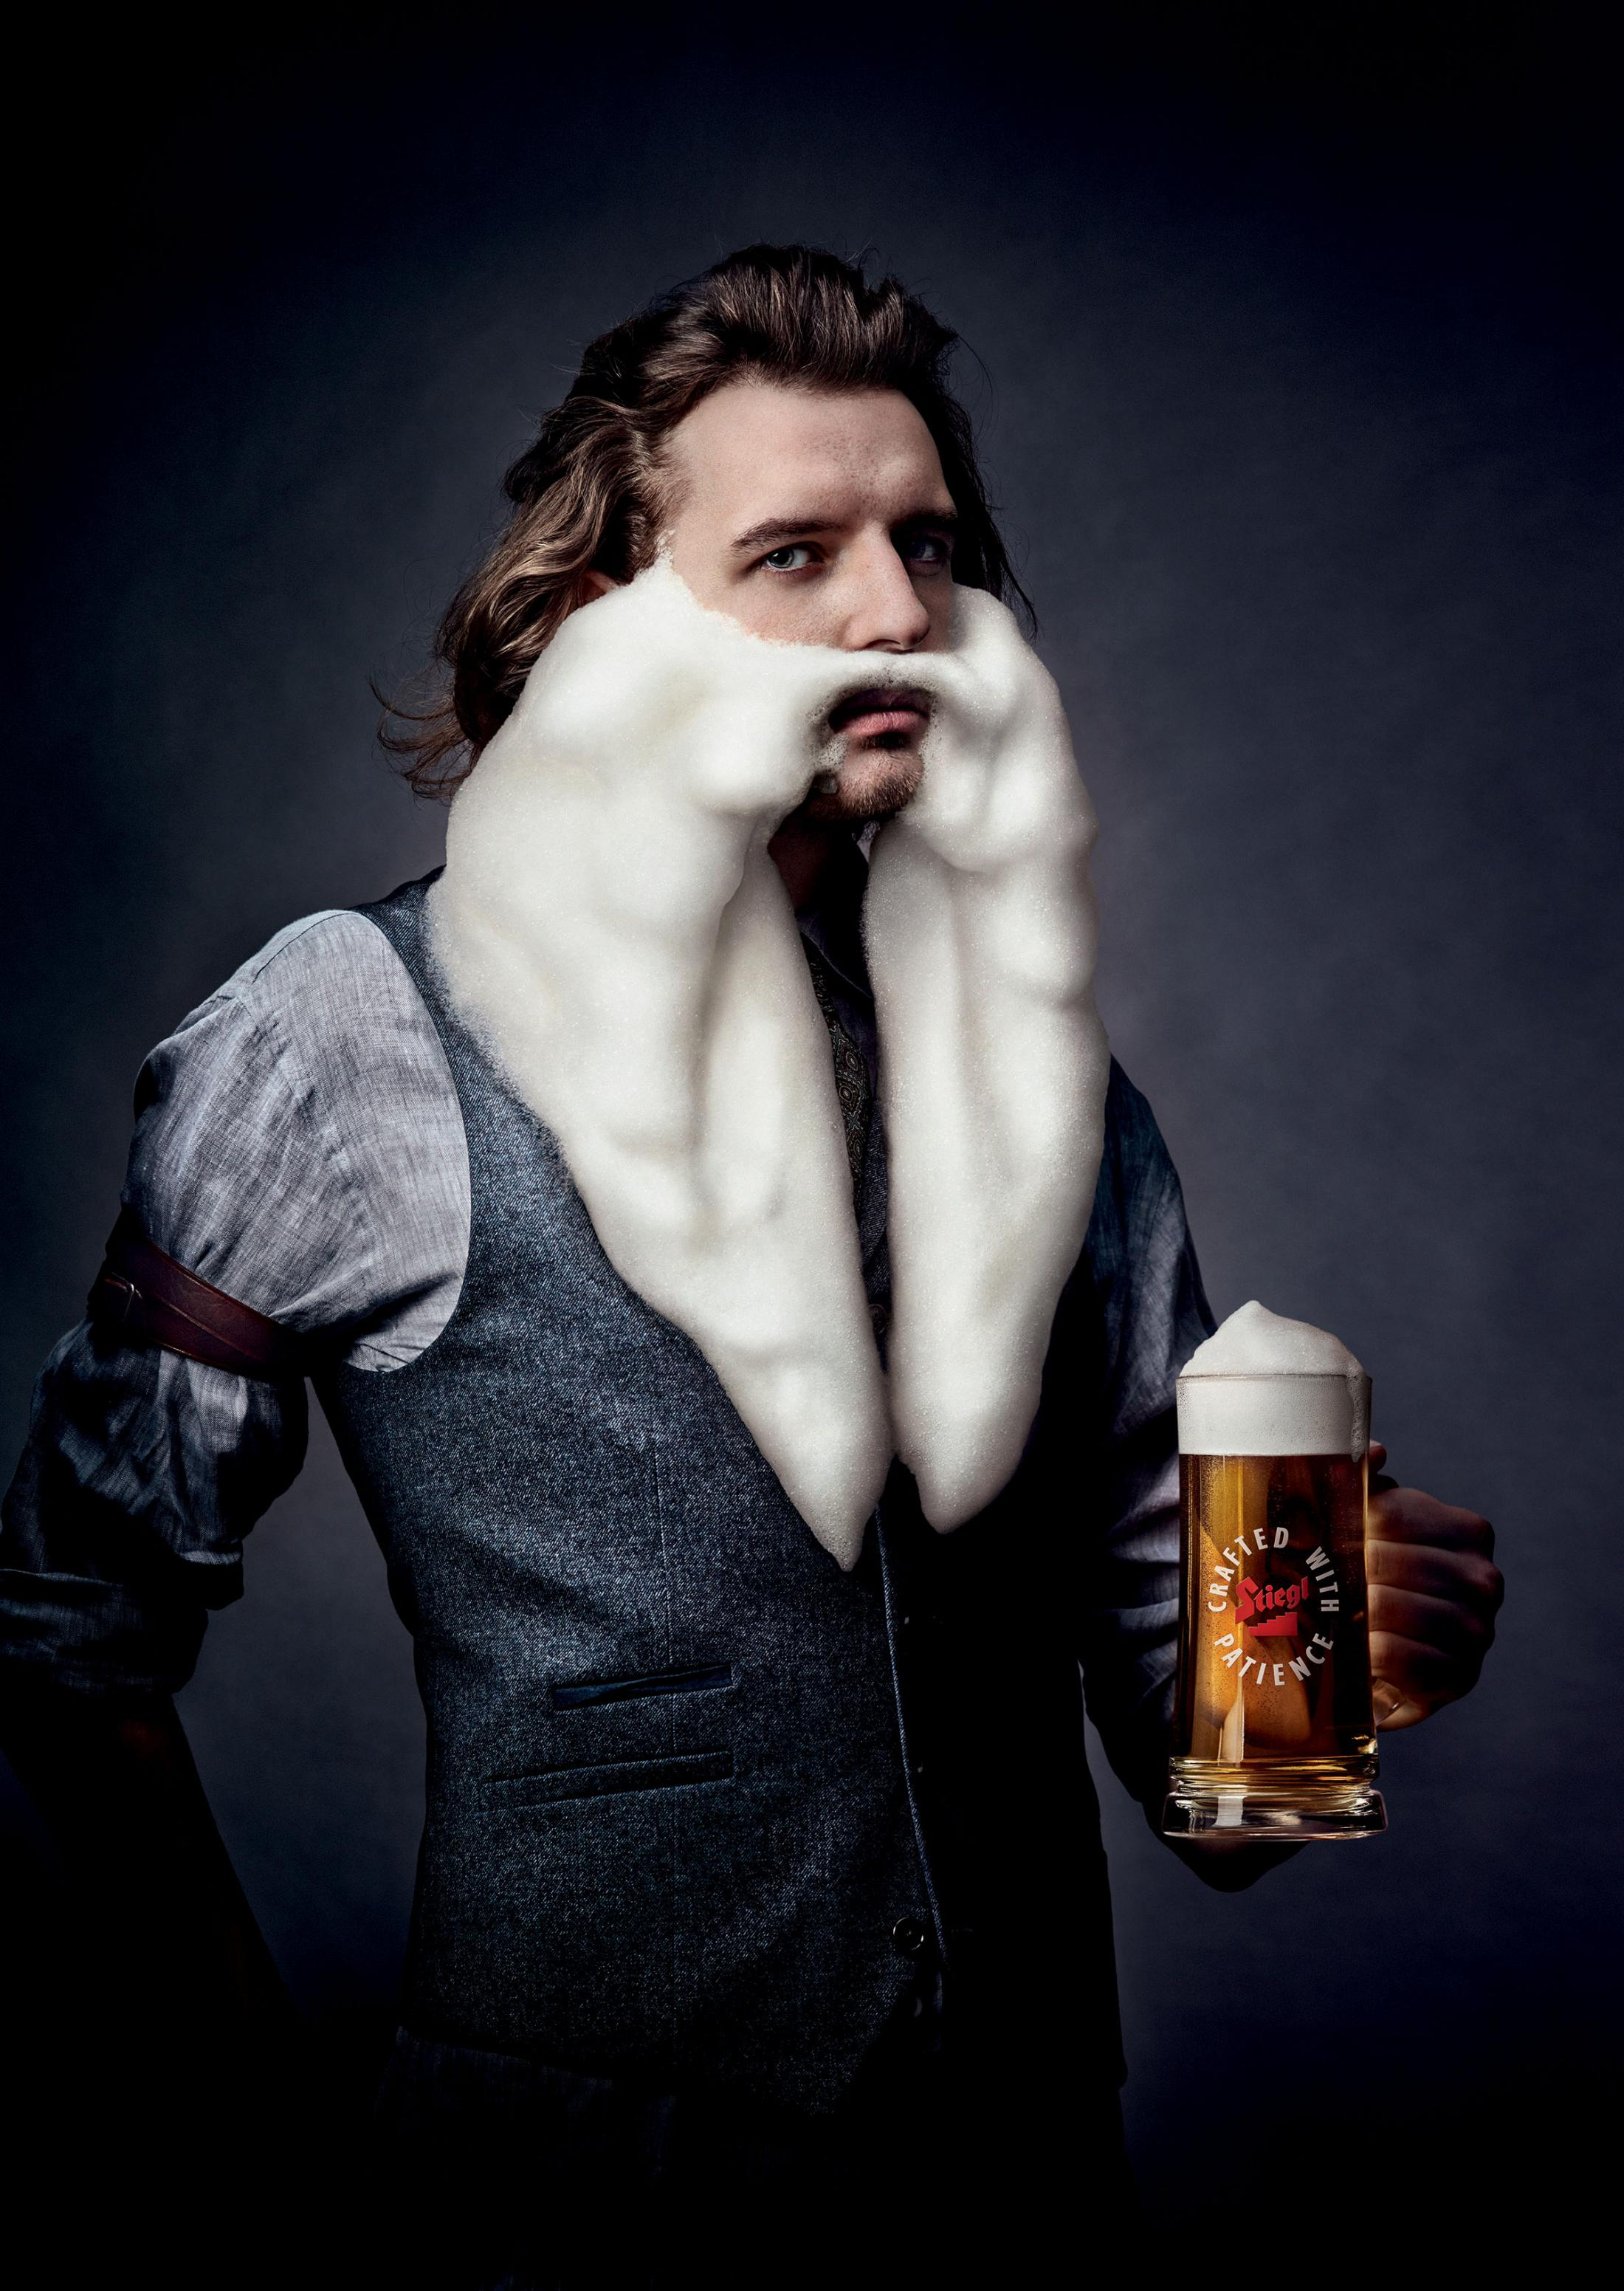 Stiegl Print Ad - Crafted with Patience, 1